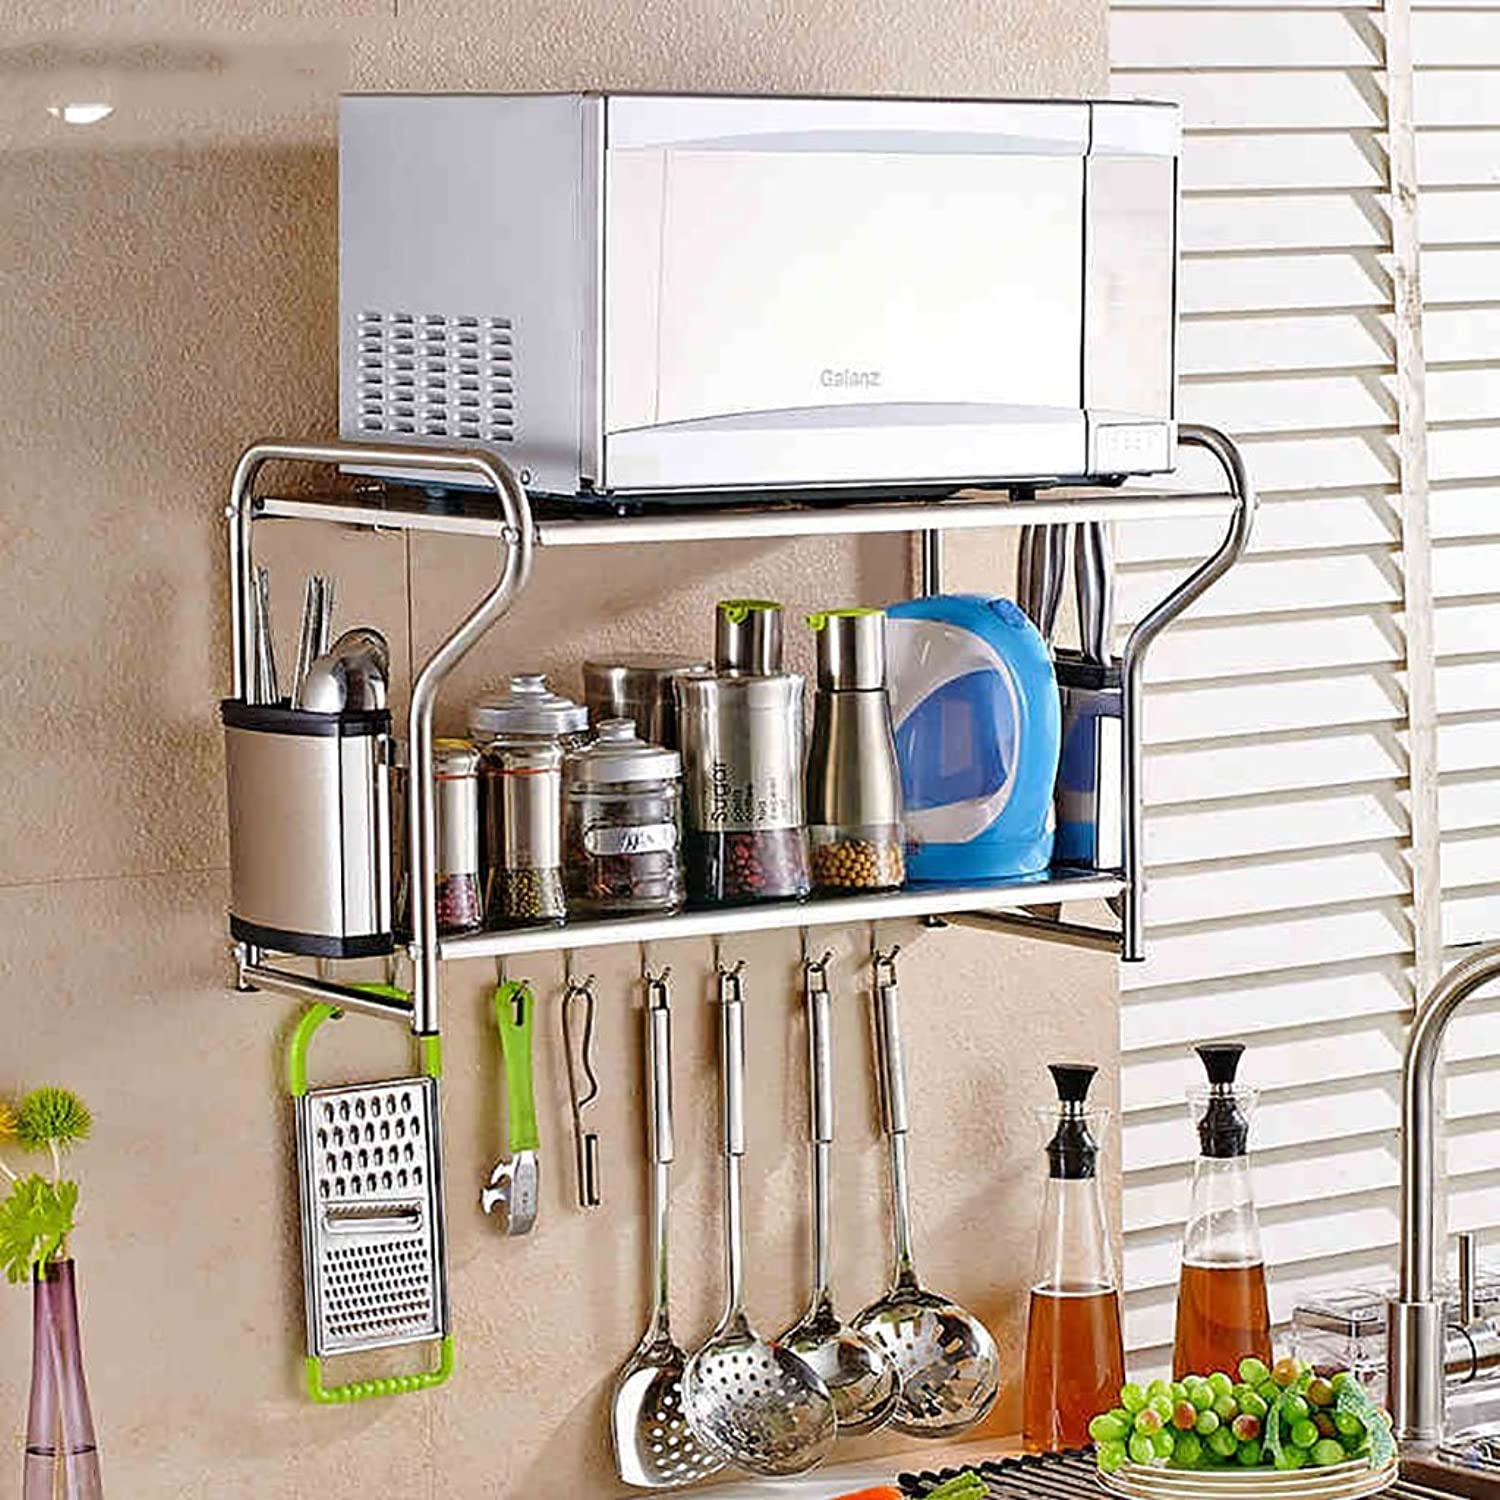 Kitchen shelf Kitchen storage rack,Practical Wall Mounted Microwave Oven Rack Spice Cooker Shelf Multifunction Stainless Steel Kitchen Dressers Sideboards Long 53   58cm, 4 Styles kitchen storage racks ( color   D , Size   53cm )